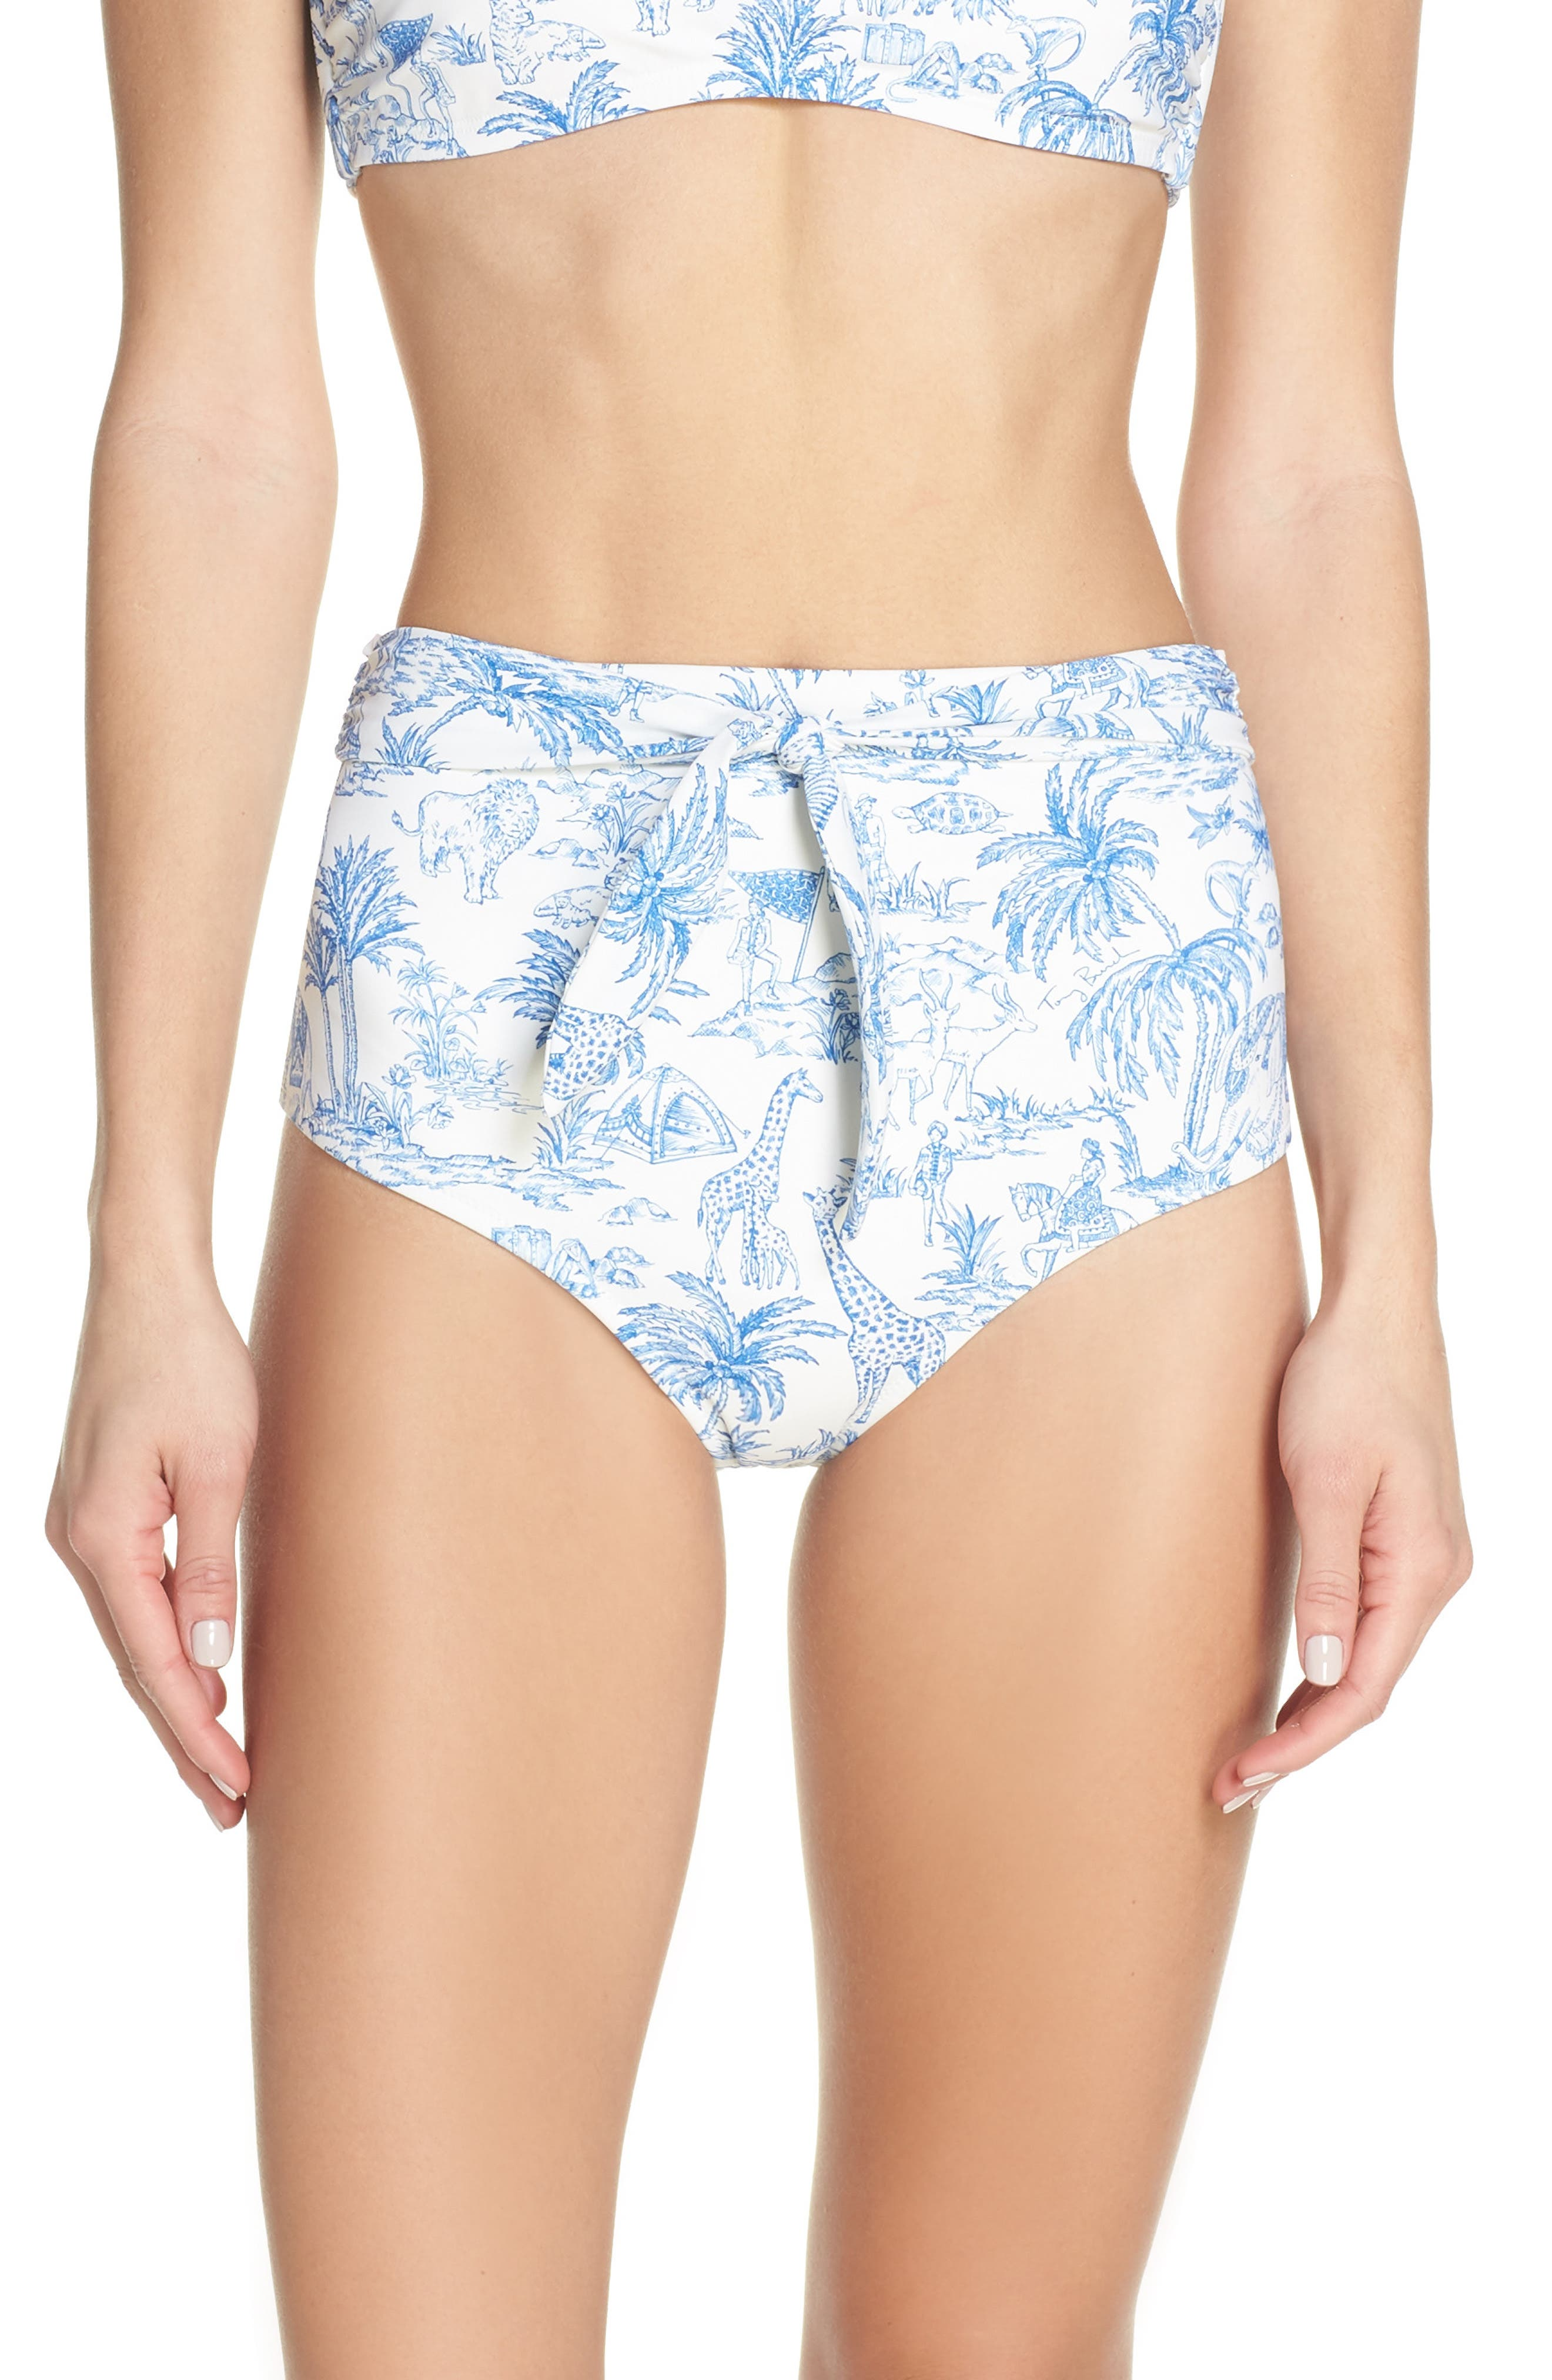 TORY BURCH Sash Tie High Waist Bikini Bottoms, Main, color, IVORY FAR AND AWAY